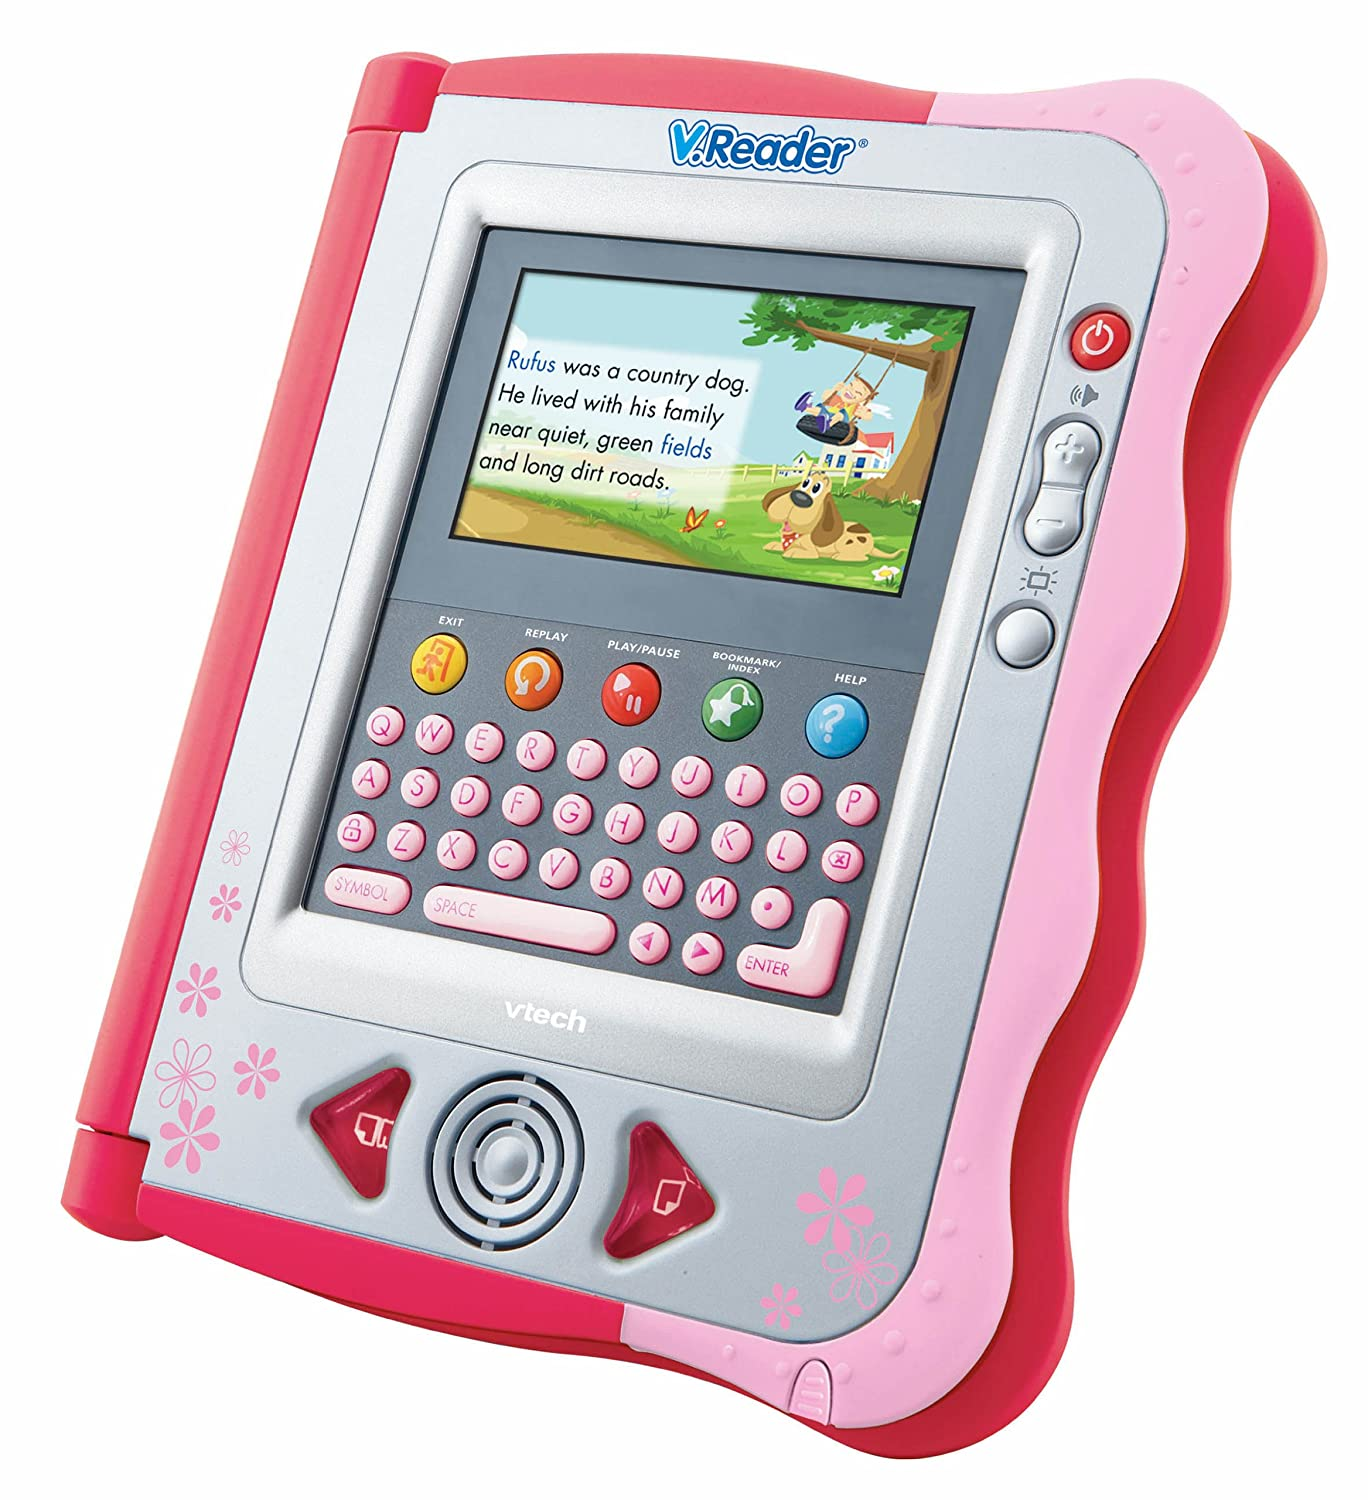 amazon com vtech v reader animated e book system pink toys games rh amazon com VTech V.Reader Case VTech V.Reader Mr Men